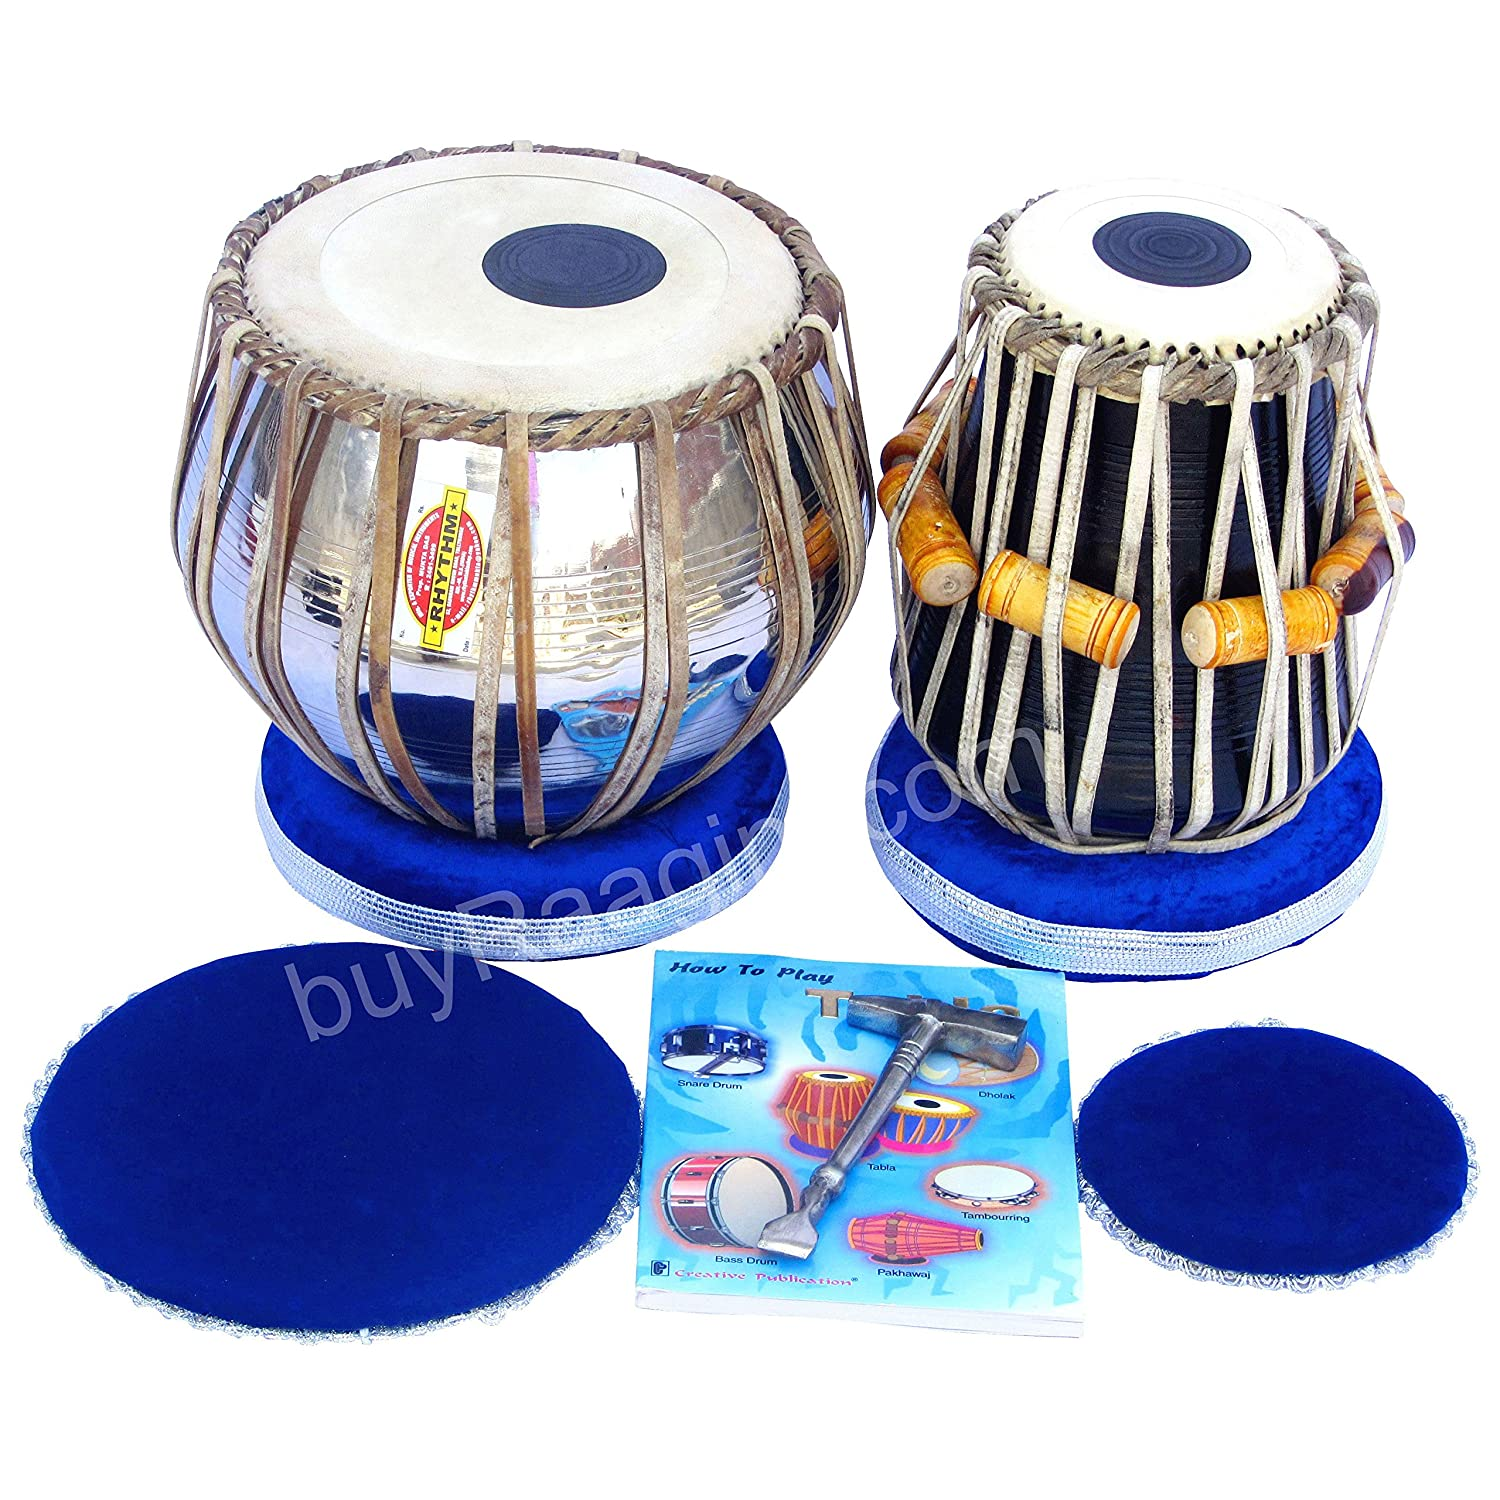 Mukta Das Tabla Set, Professional Tabla, 2.5 Kilograms Brass Bayan, Sheesham Tabla Dayan - Tuneable To C Sharp, Padded Bag, Book, Hammer, Cushions, Cover, Tabla Hand Drums (PDI-AIF) Maharaja Musicals